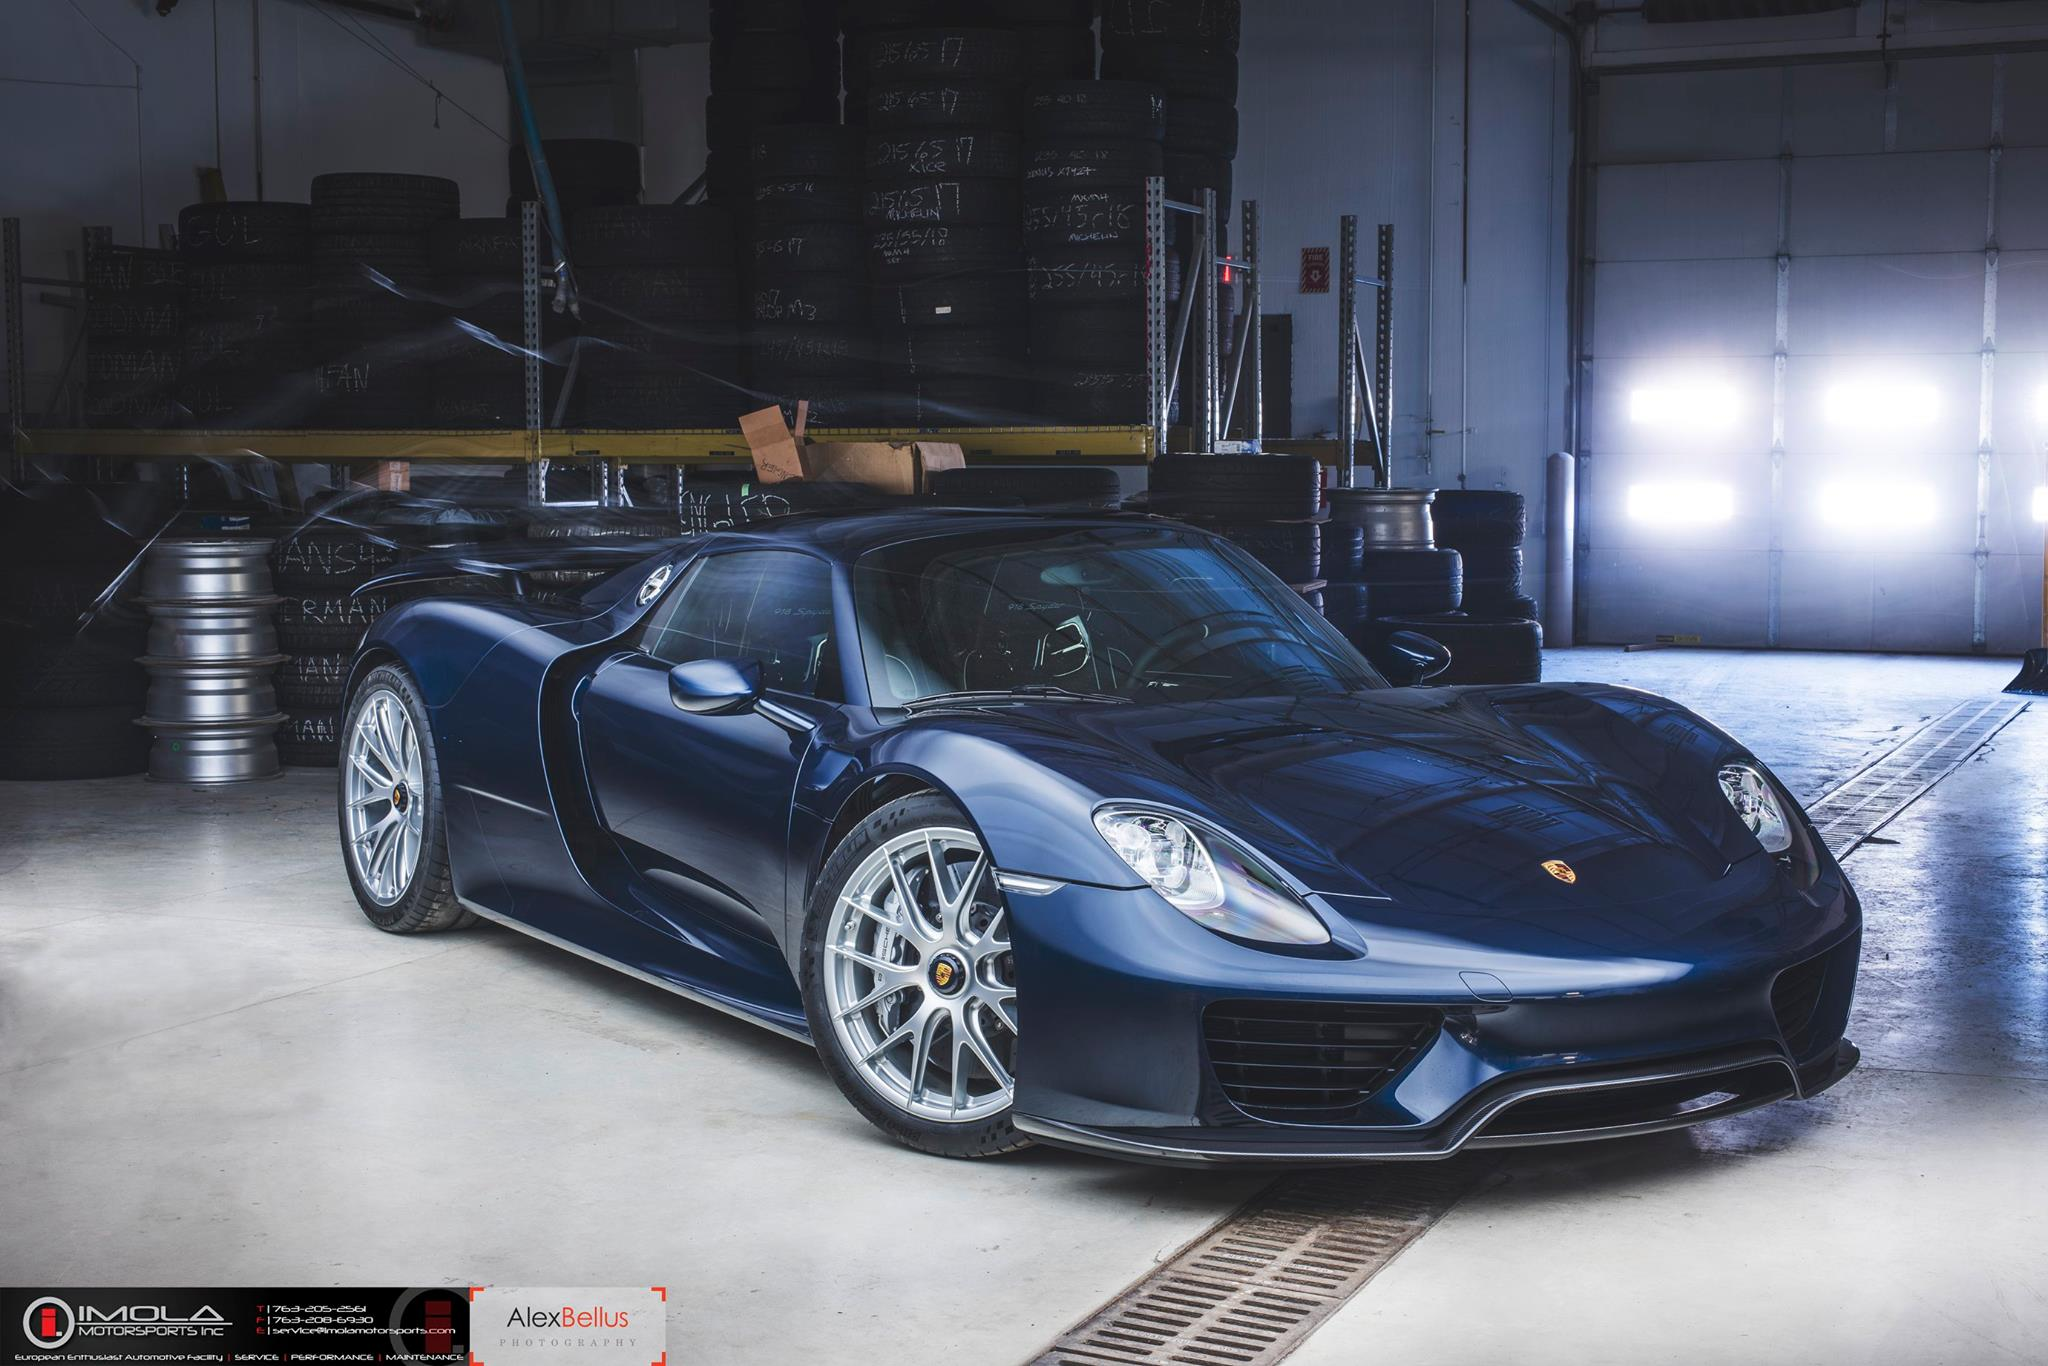 Blue Porsche 918 Spyder - front view, garage ...